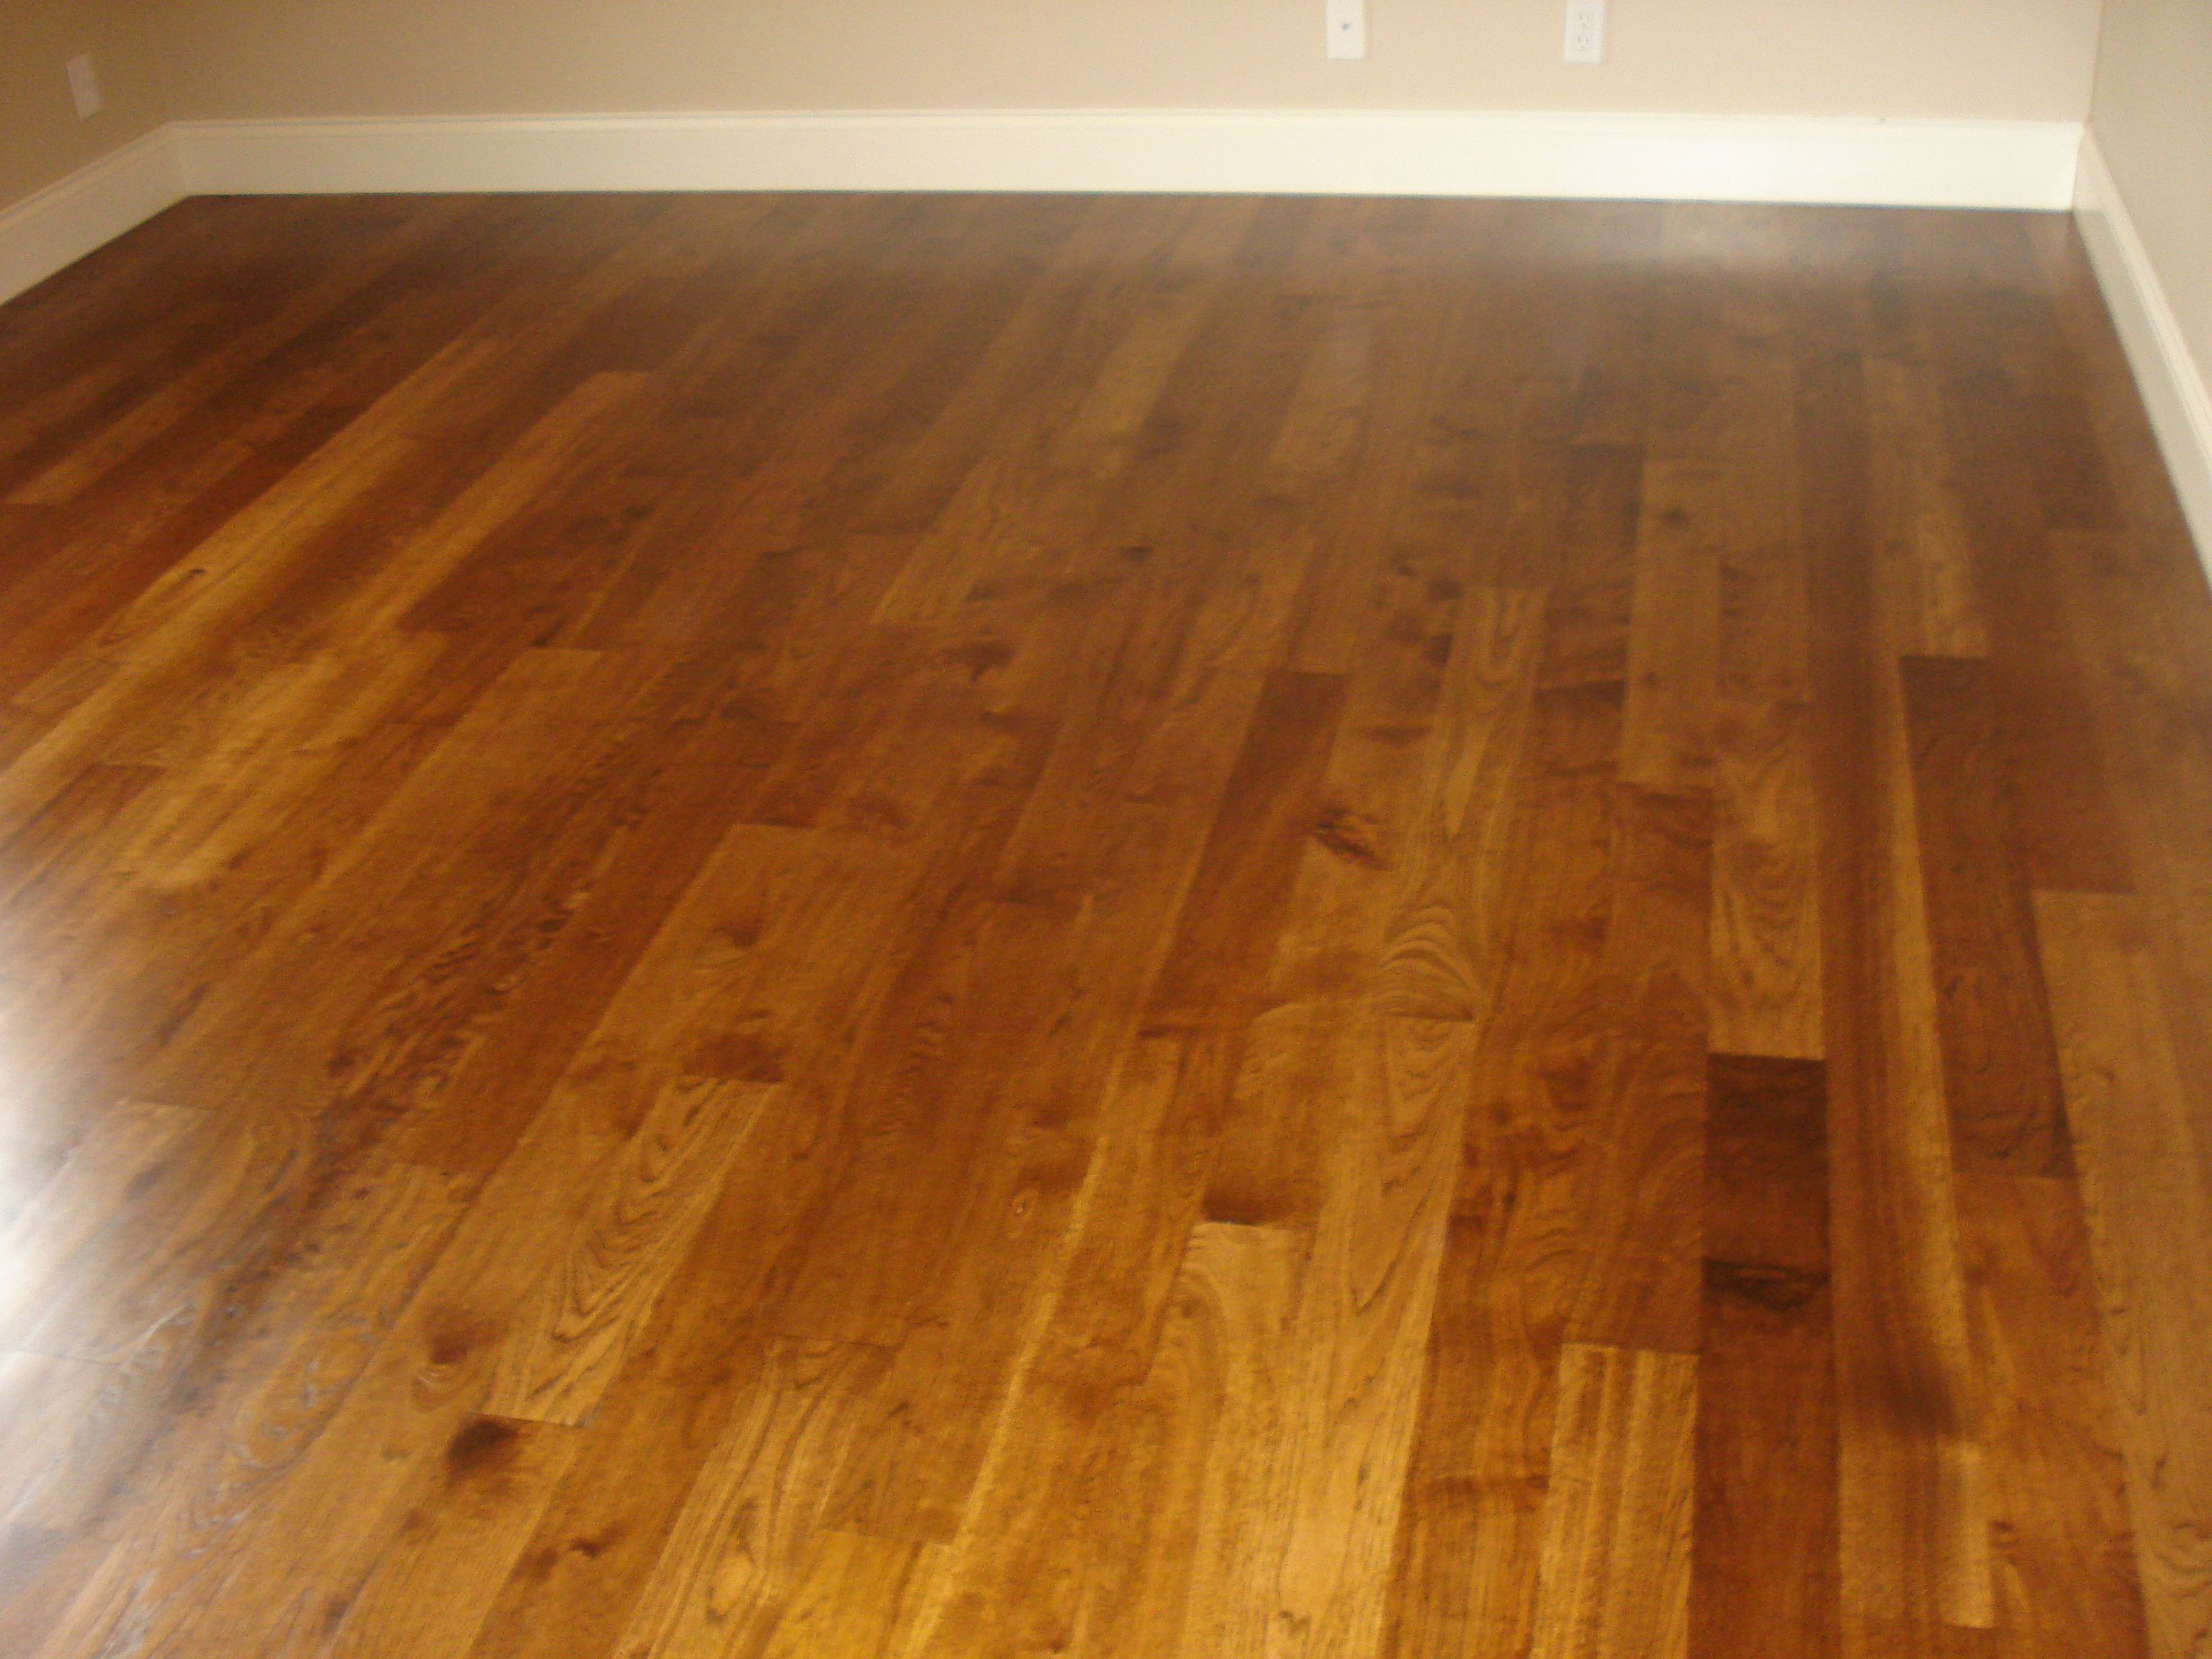 Empty Room Hardwood Floor 3